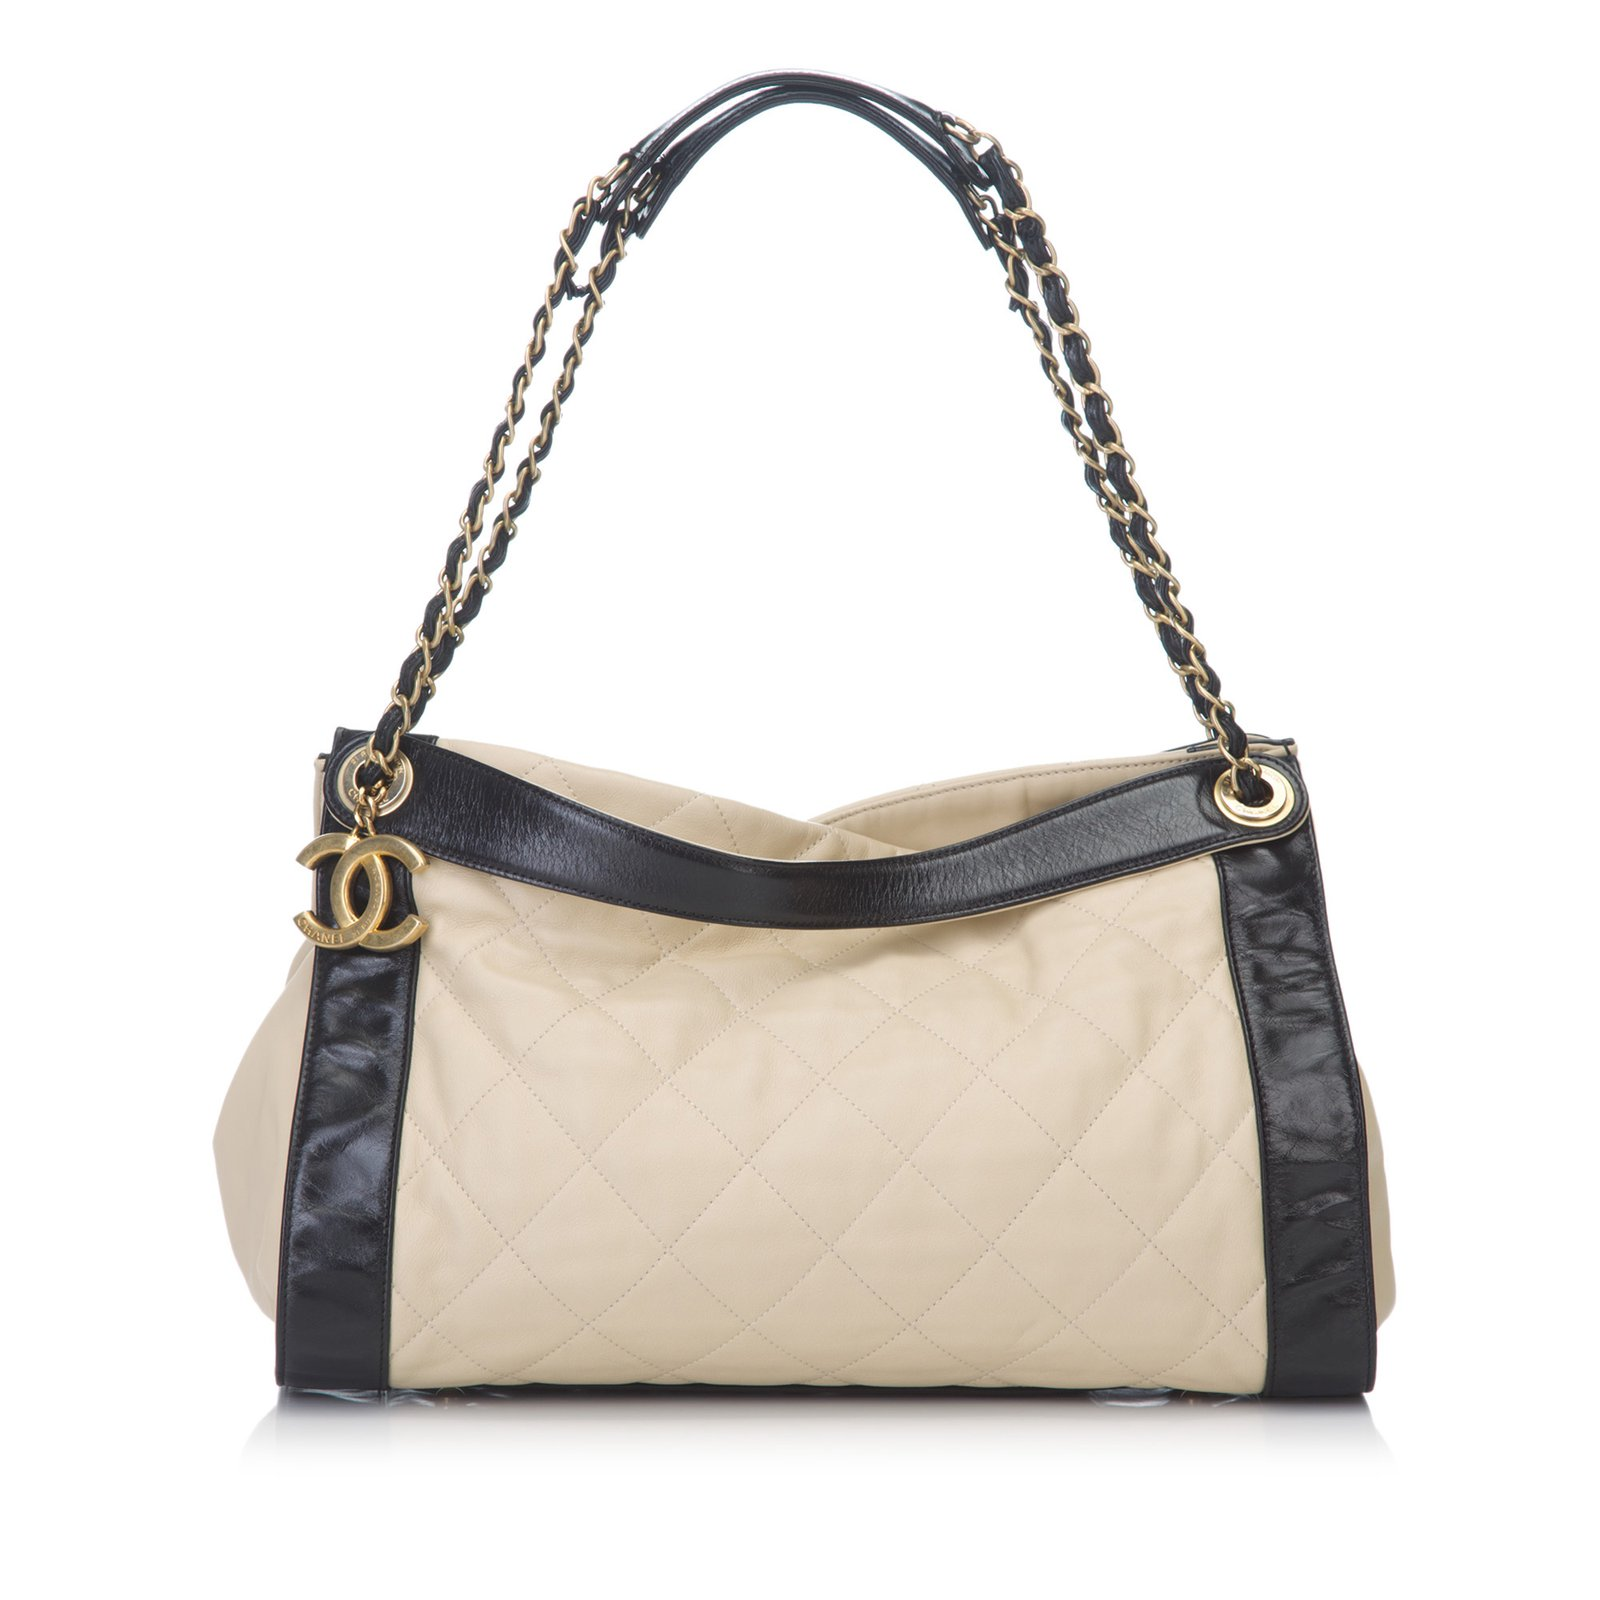 b08e5cced030 Chanel Matelasse Lambskin Leather Shoulder Bag Handbags Leather Brown,Black,Beige  ref.82459